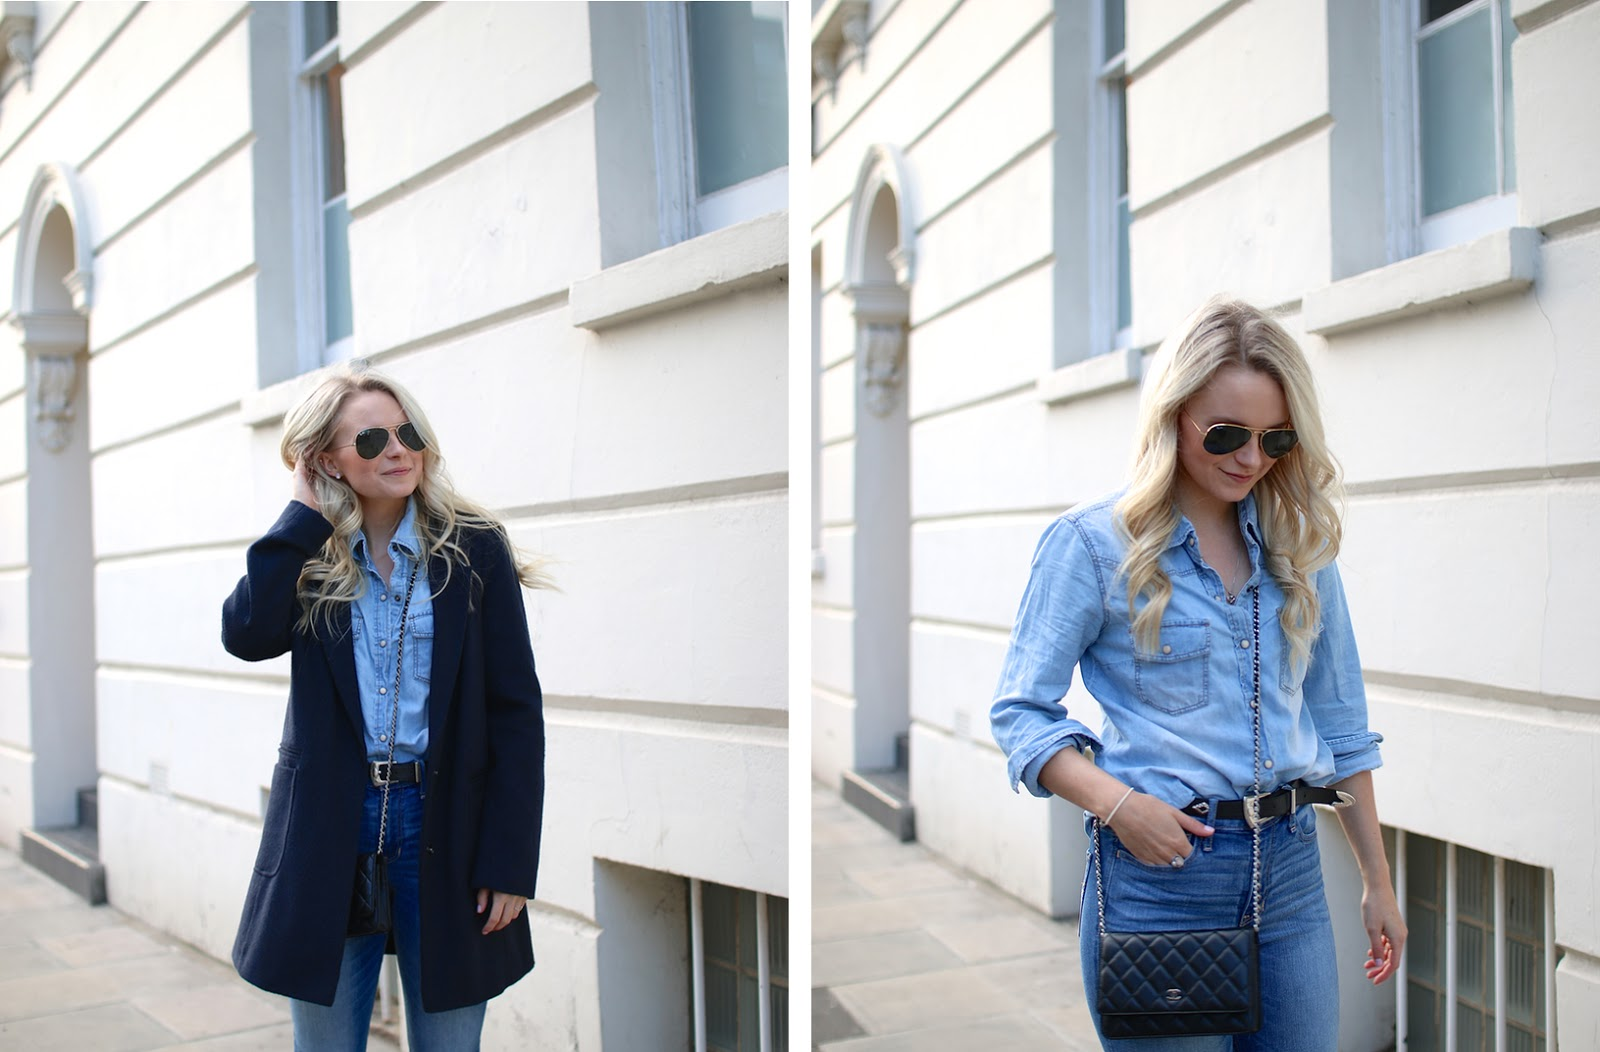 chanel wallet on chain, blonde women walking through London in an stylish all denim outfit